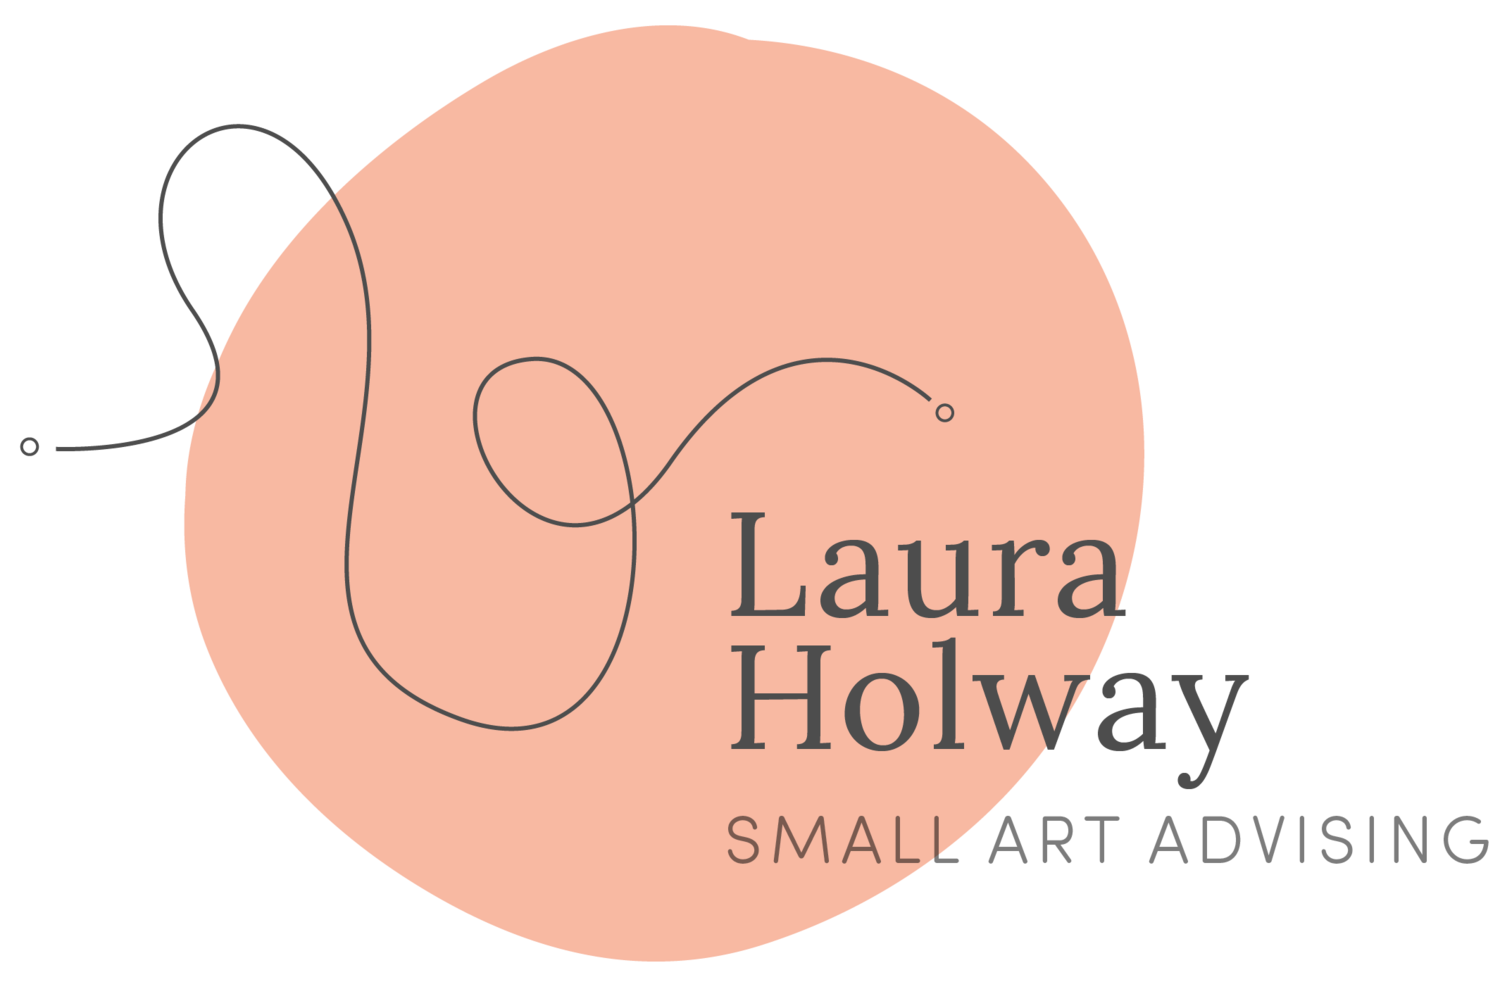 Laura Holway